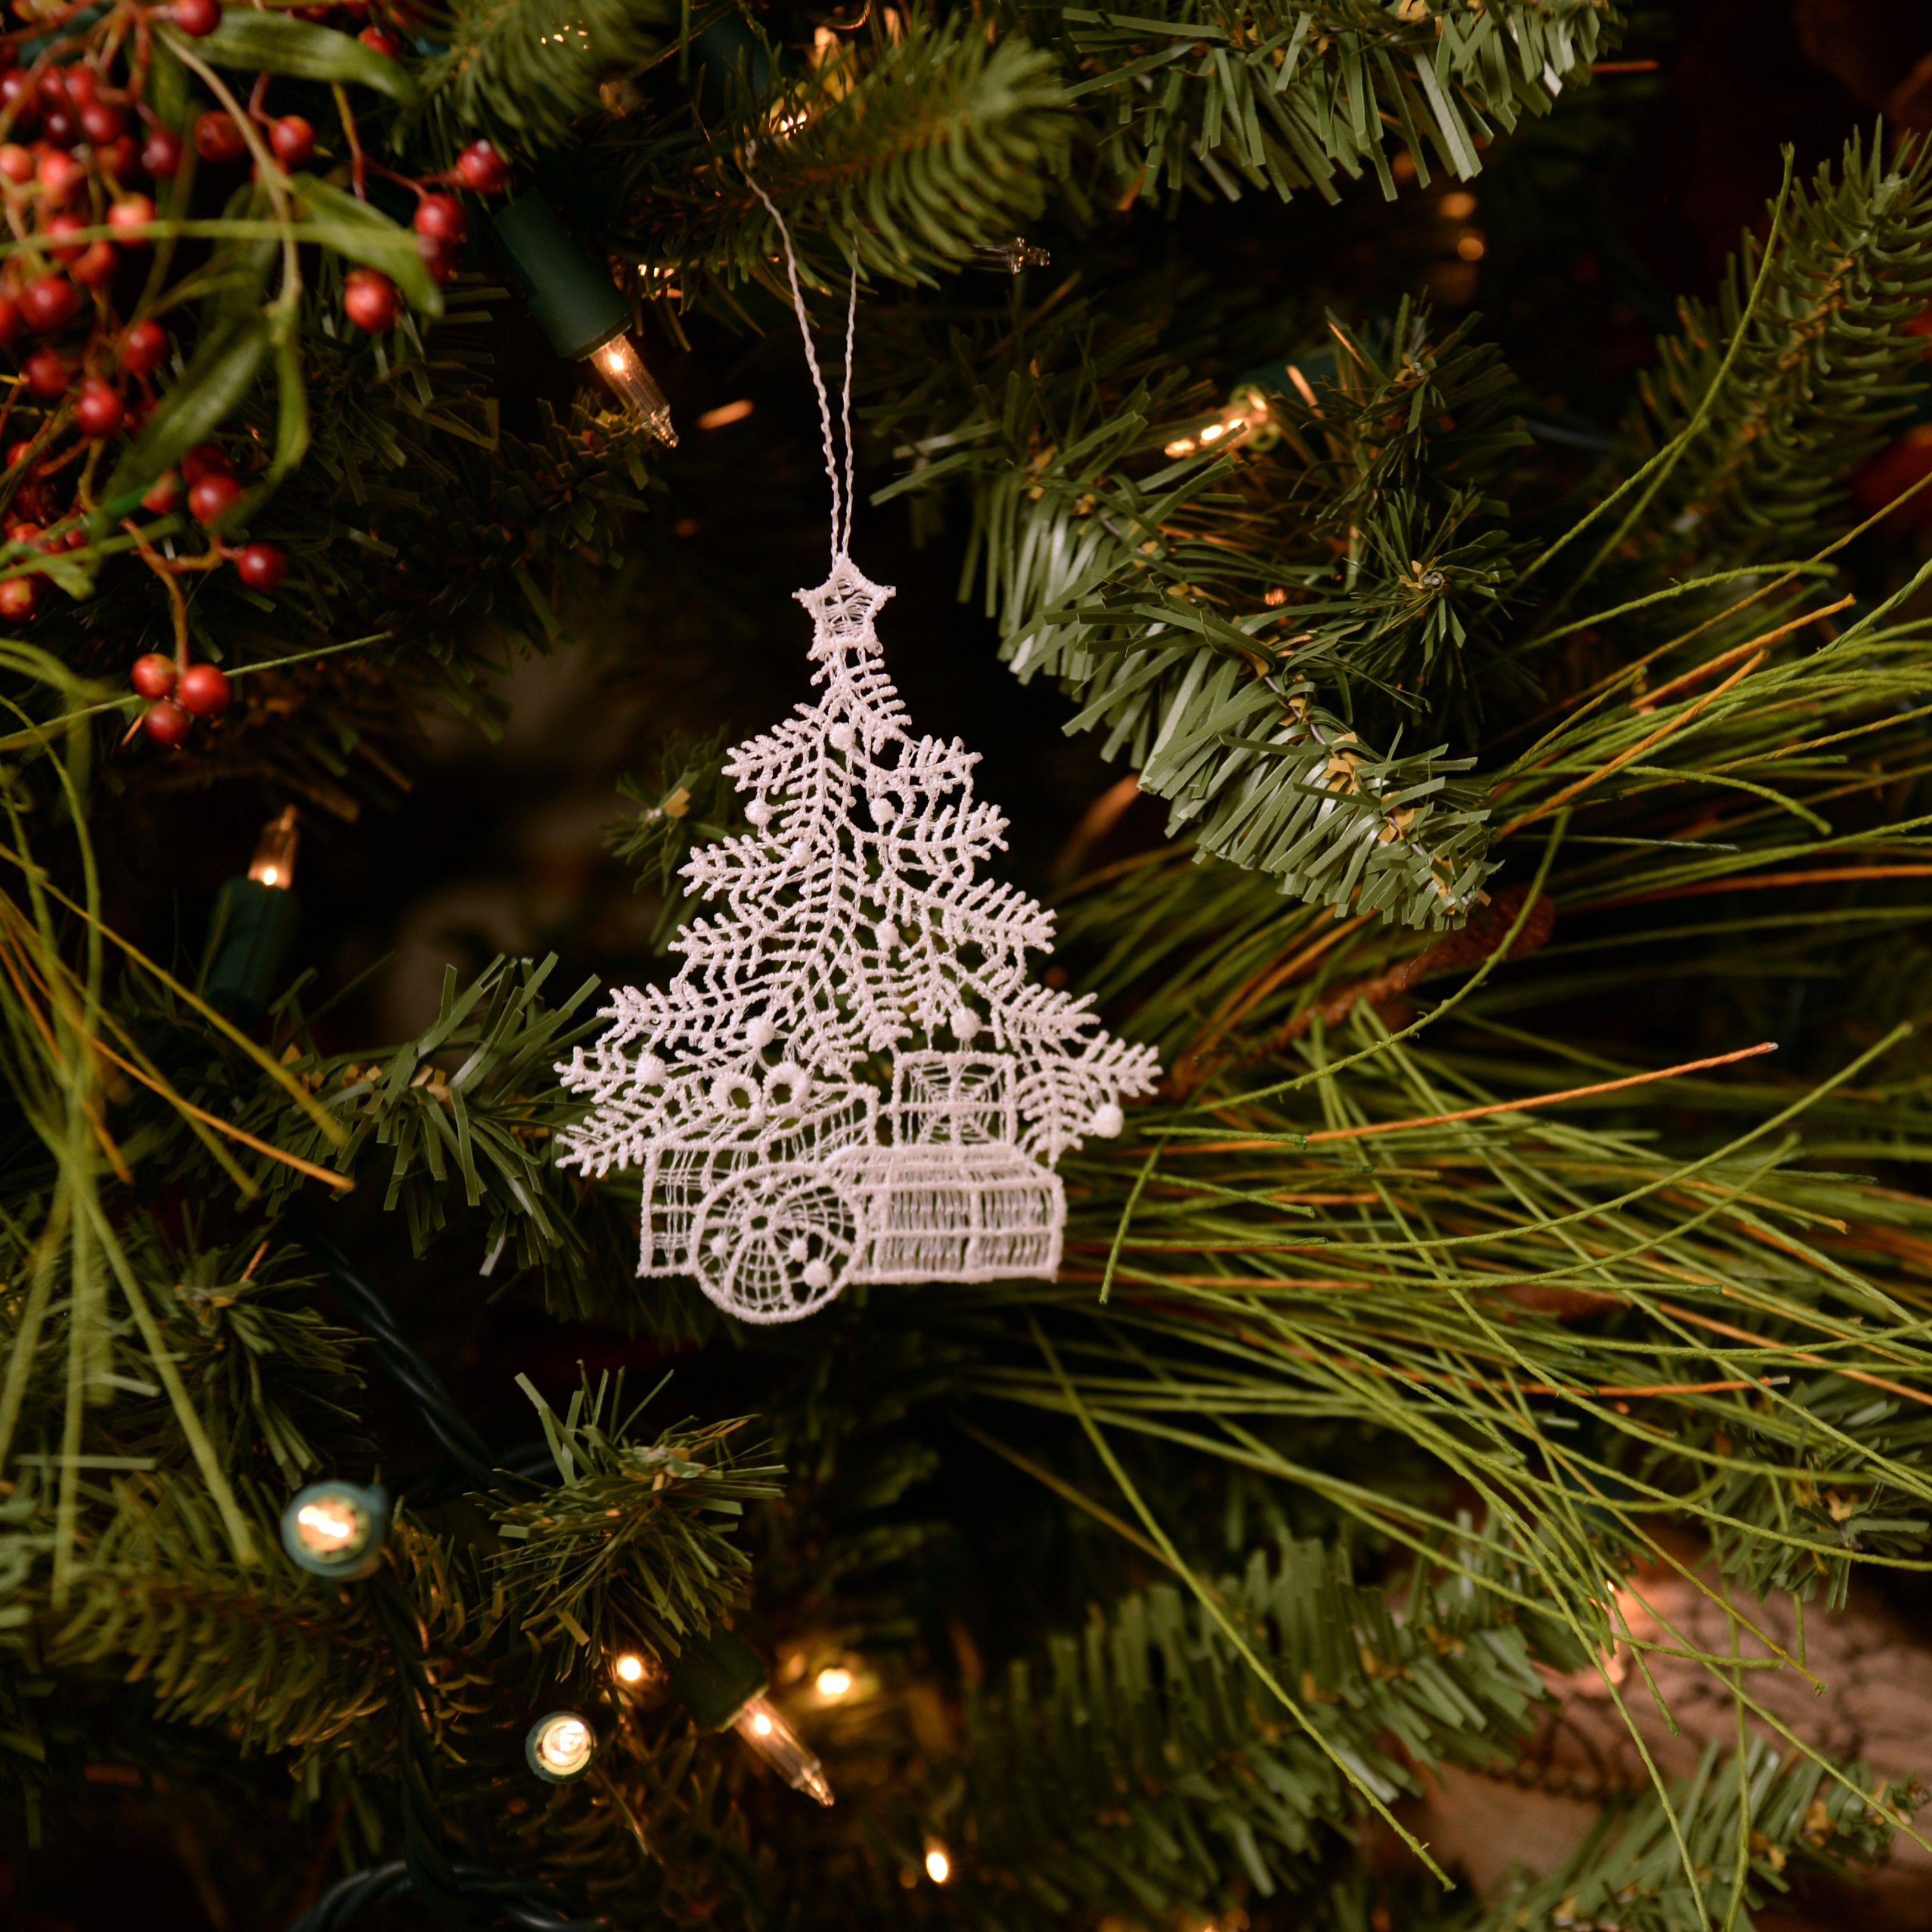 Christmas Tree Ornament Sets.Christmas Lace Ornament Tree White From Macrame Ornaments